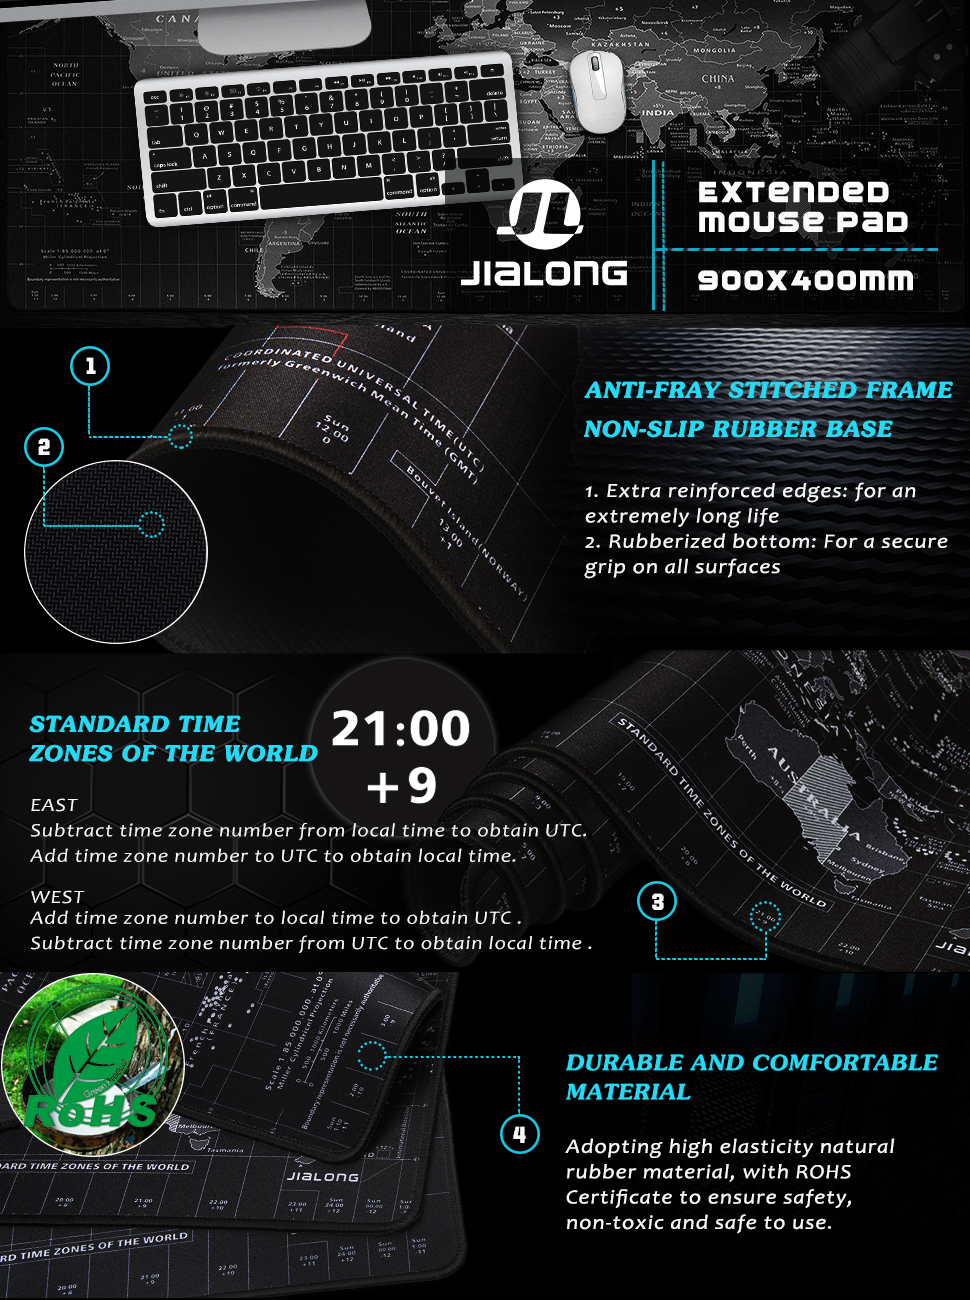 gaming mouse pad large extended full desk mousepad mat xxl xl big keyboard extra protector cover